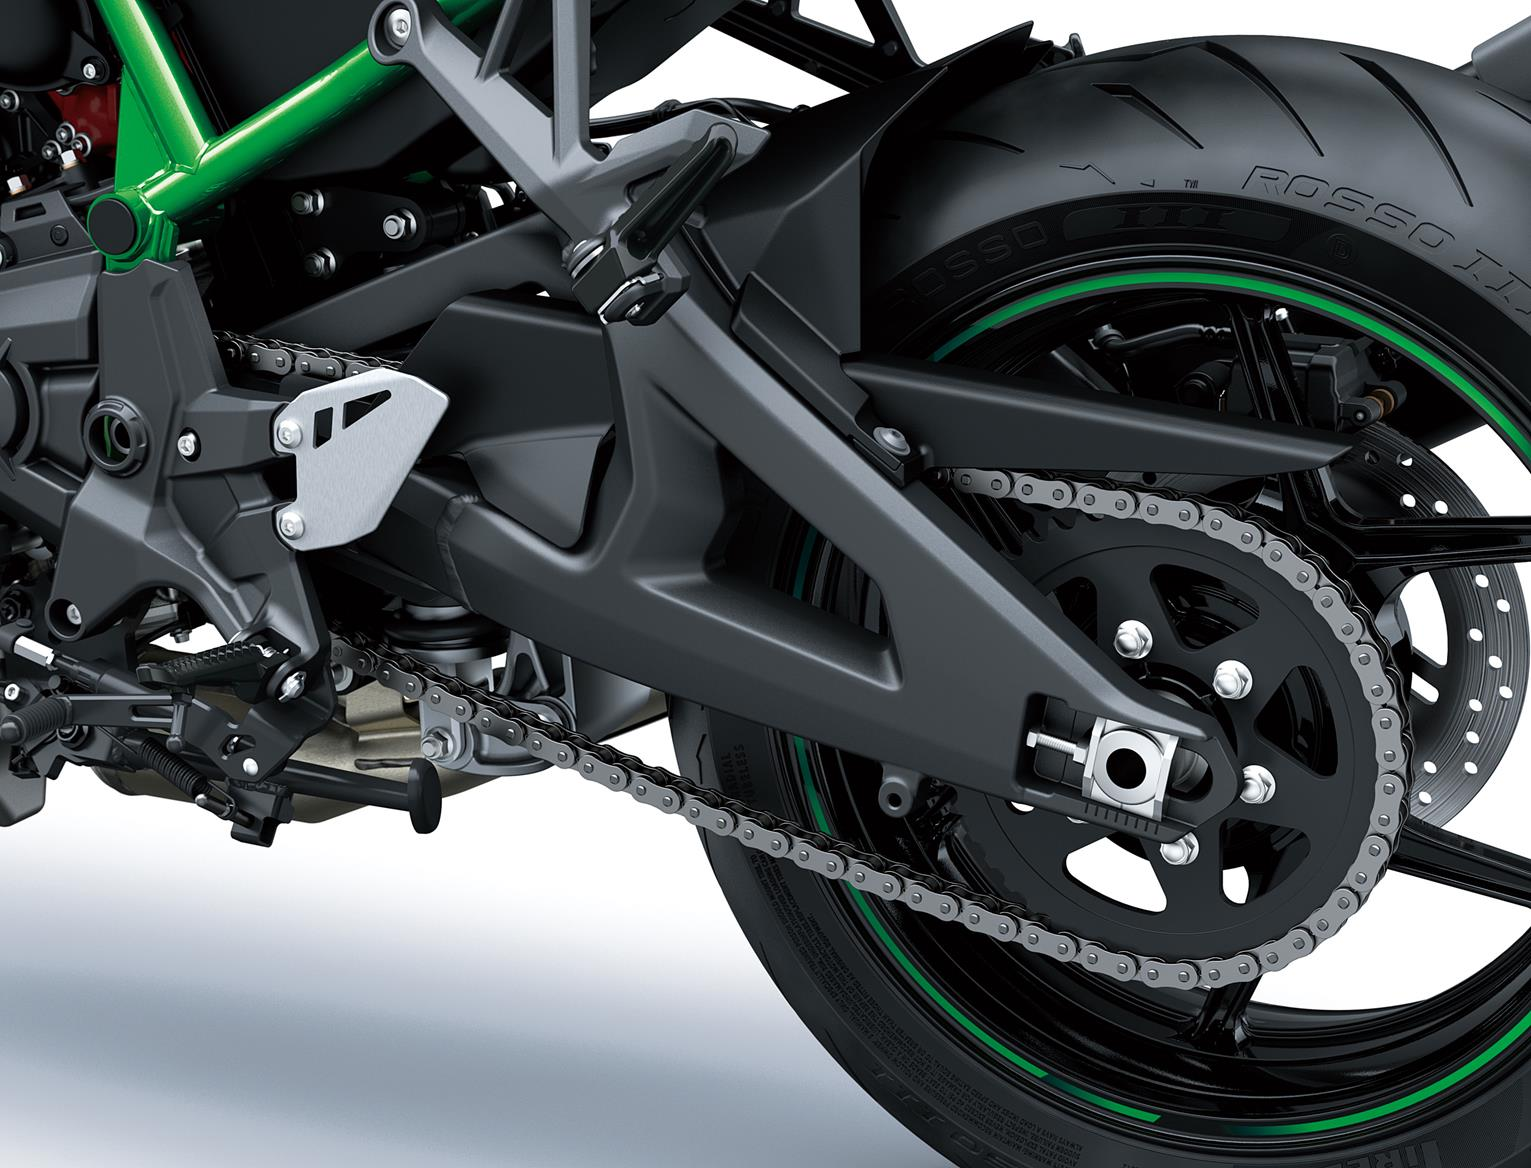 Kawasaki Z H2 swingarm and rear assembly